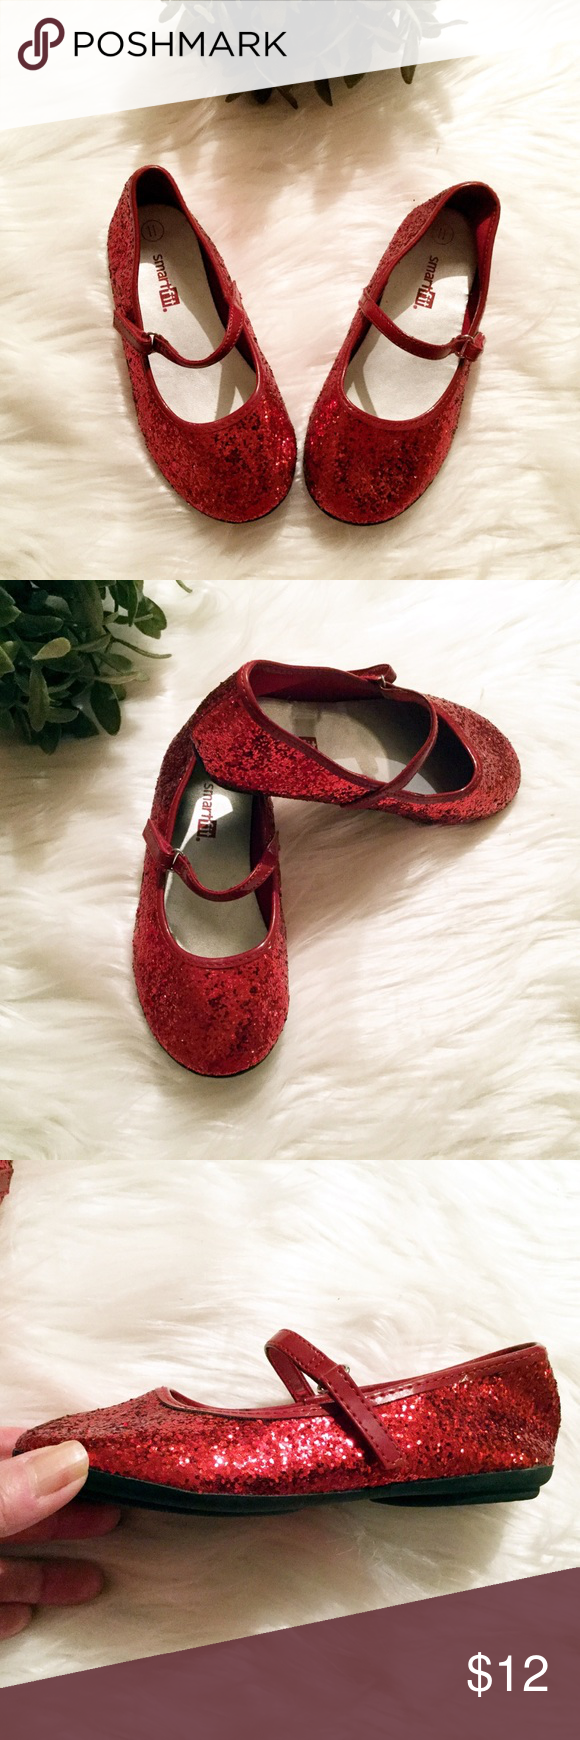 ... Shoes Girls Toddler Ruby 🍃🍃🍃🍃 Ruby red glitter Mary-Jane shoes.  Made by Smart Fit with non slip soles. So cute for Valentines Day f744f5ce7